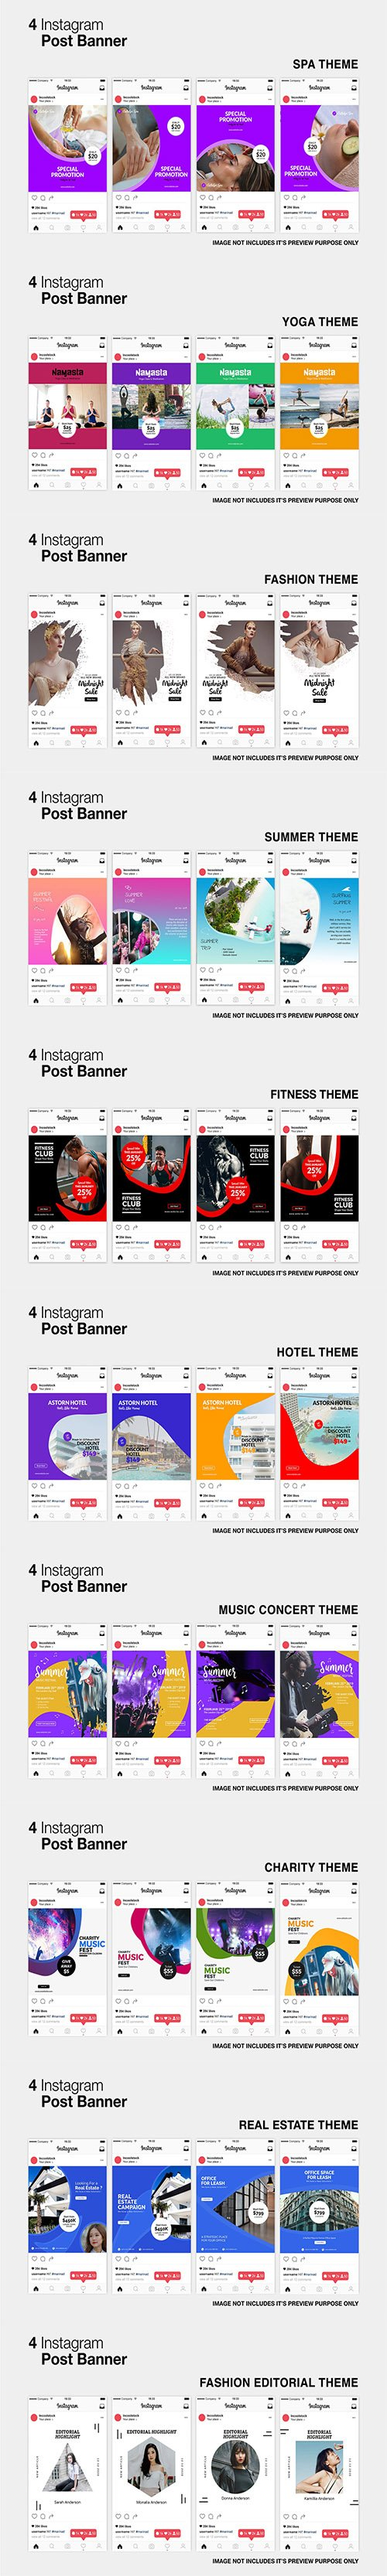 Instagram Posts Banners Pack